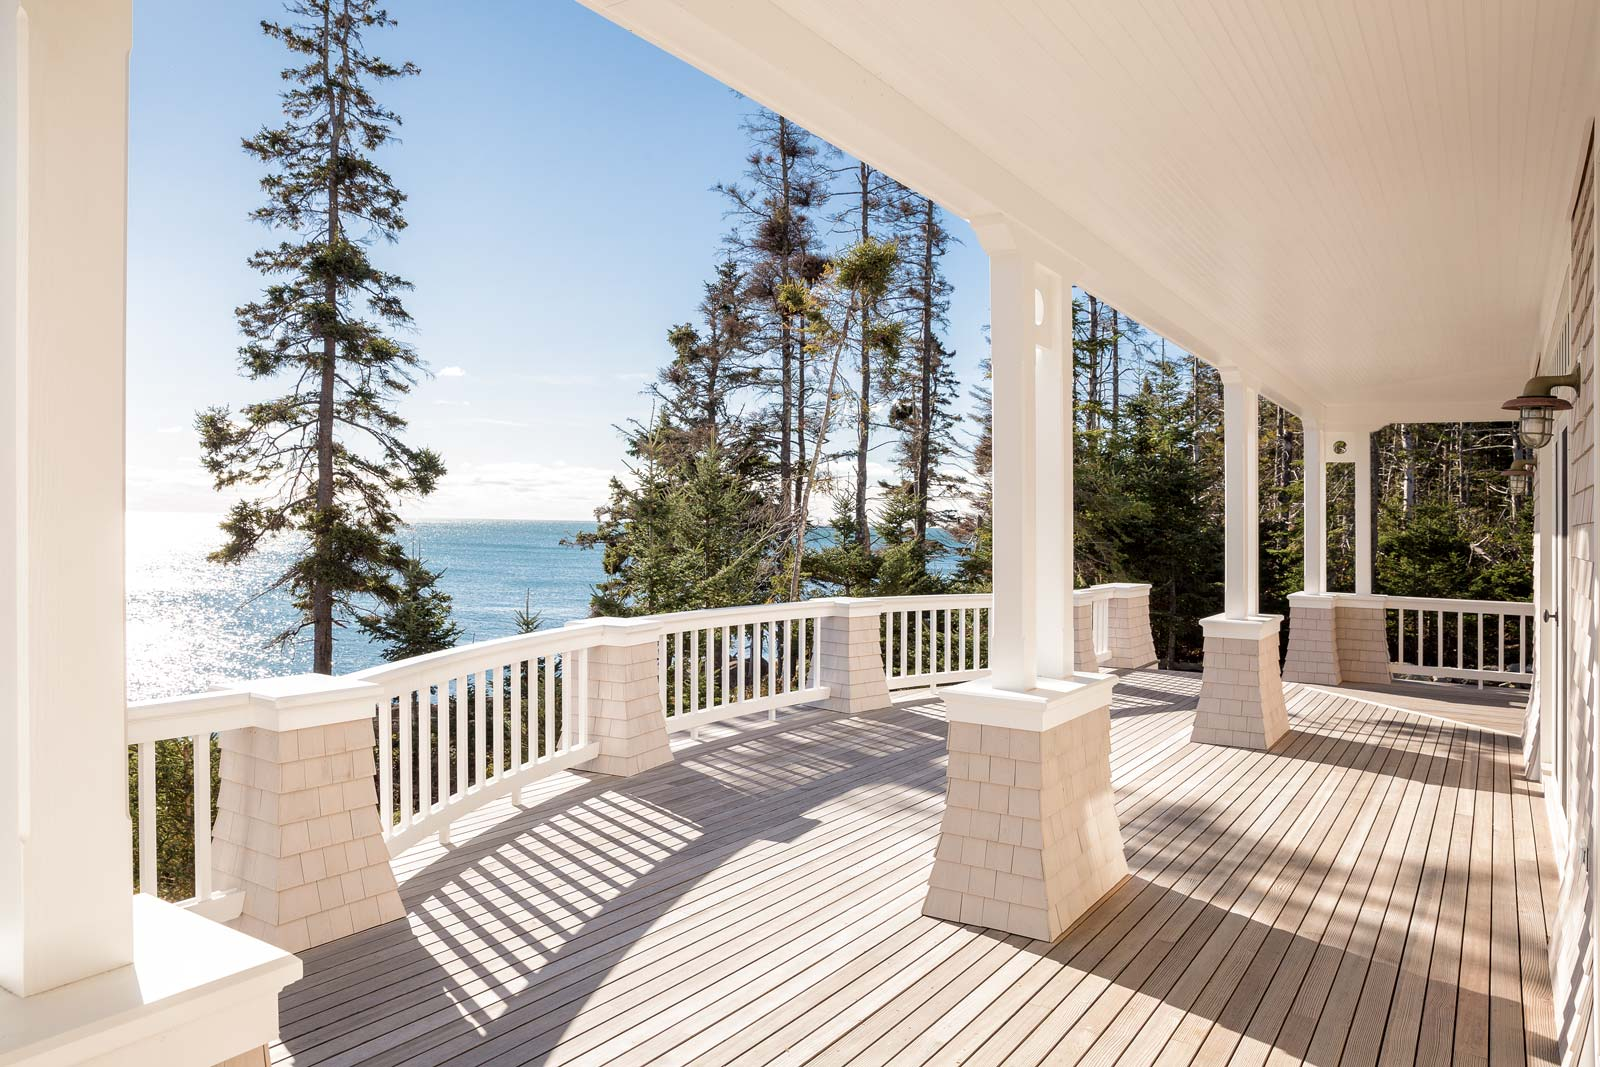 Seclusion, stillness, a water view library, a policy against computers in the main house, and a deck (with grill) that spans the entire backside of the home—after long and respected careers, doctors Dianne Rekow and Van Thompson have created a retirement utopia.